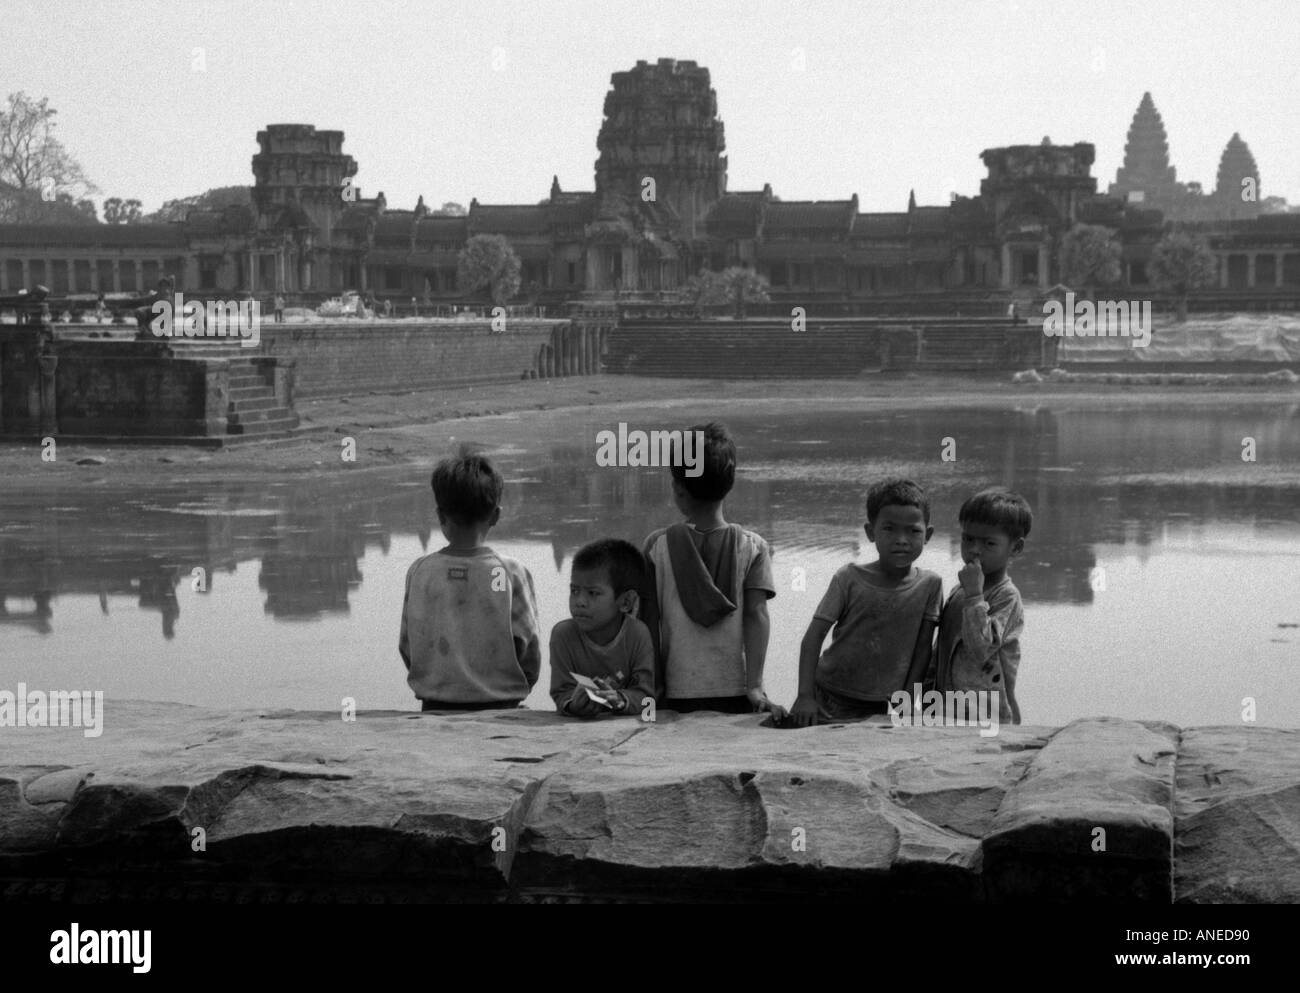 Portrait group indigenous boy sit outdoor look watch huge ancient site reflection water Angkor Wat Cambodia Southeast Asia - Stock Image